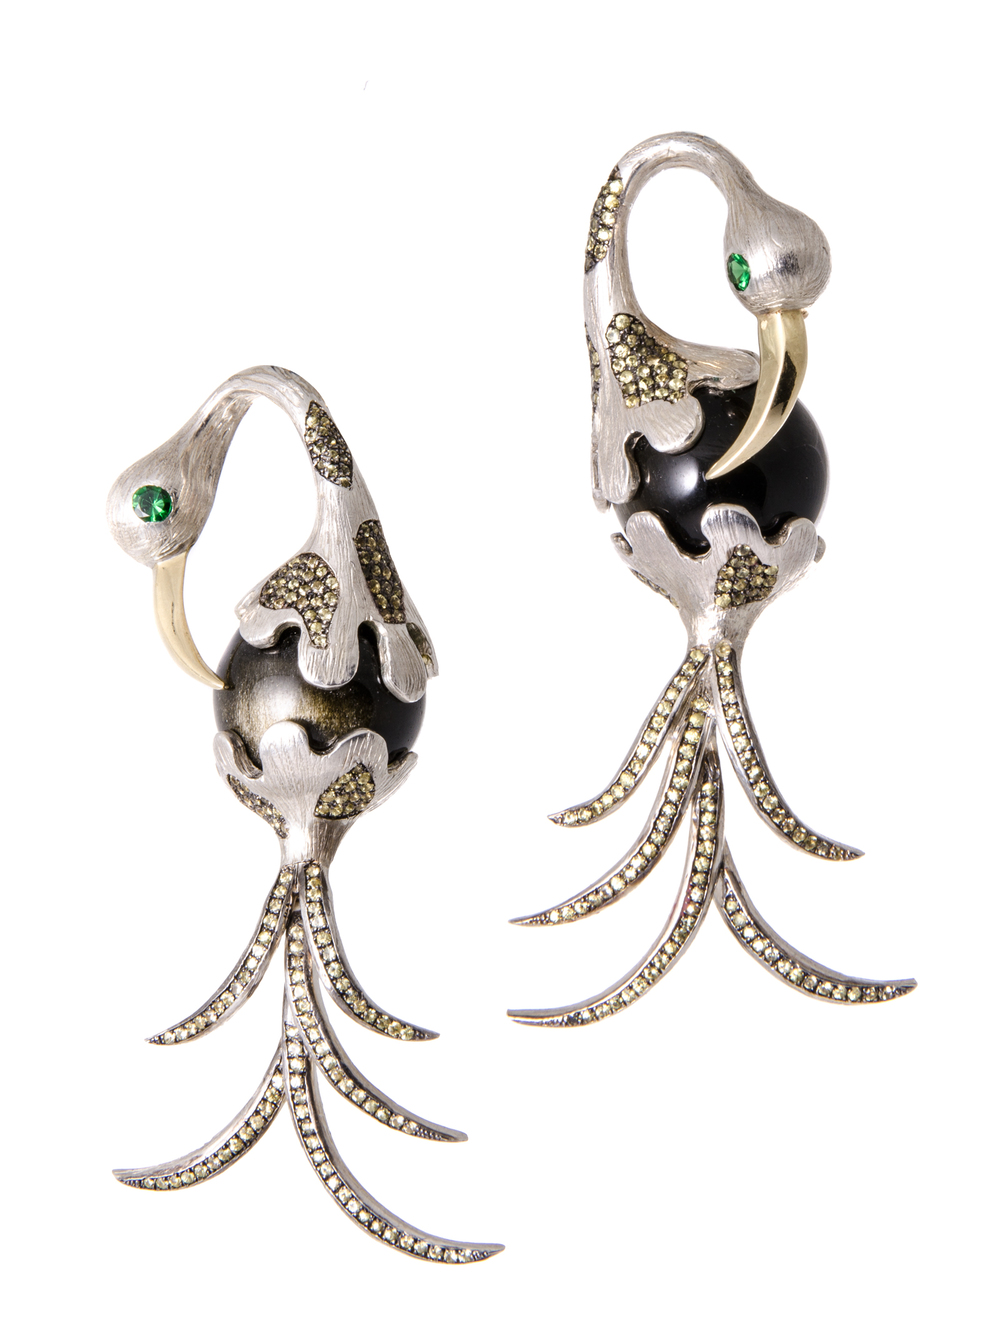 Gaelle Khouri - Pelican Earrings.jpg